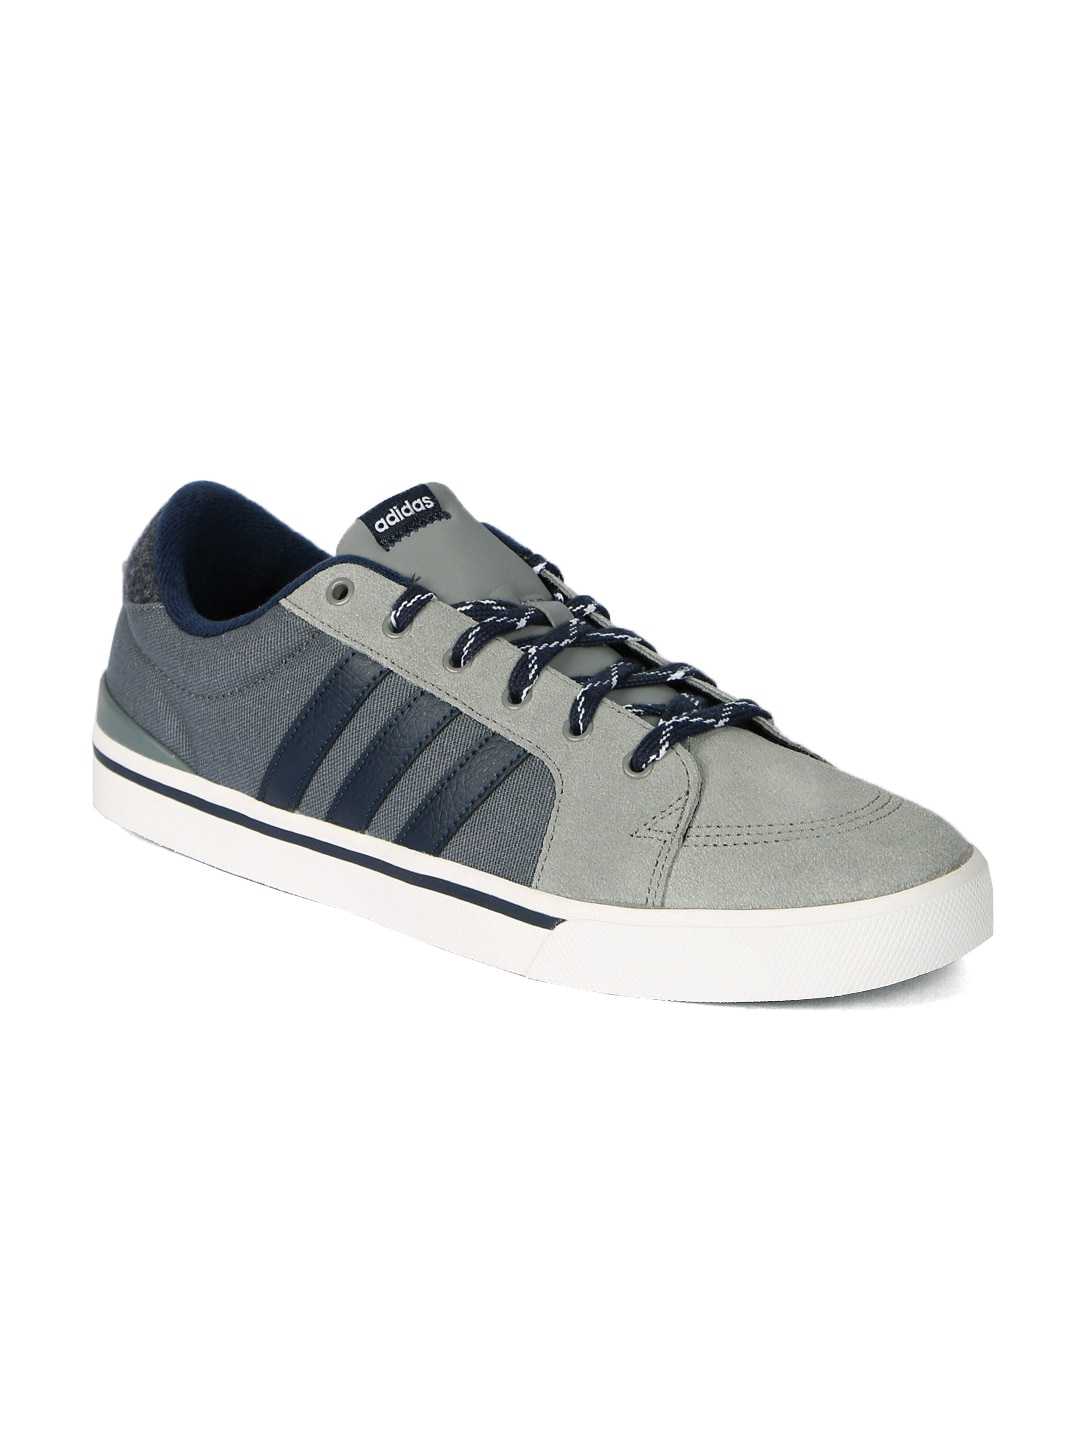 new arrival 1923b e4943 ... grey pink adidas neo skate white yellow ...